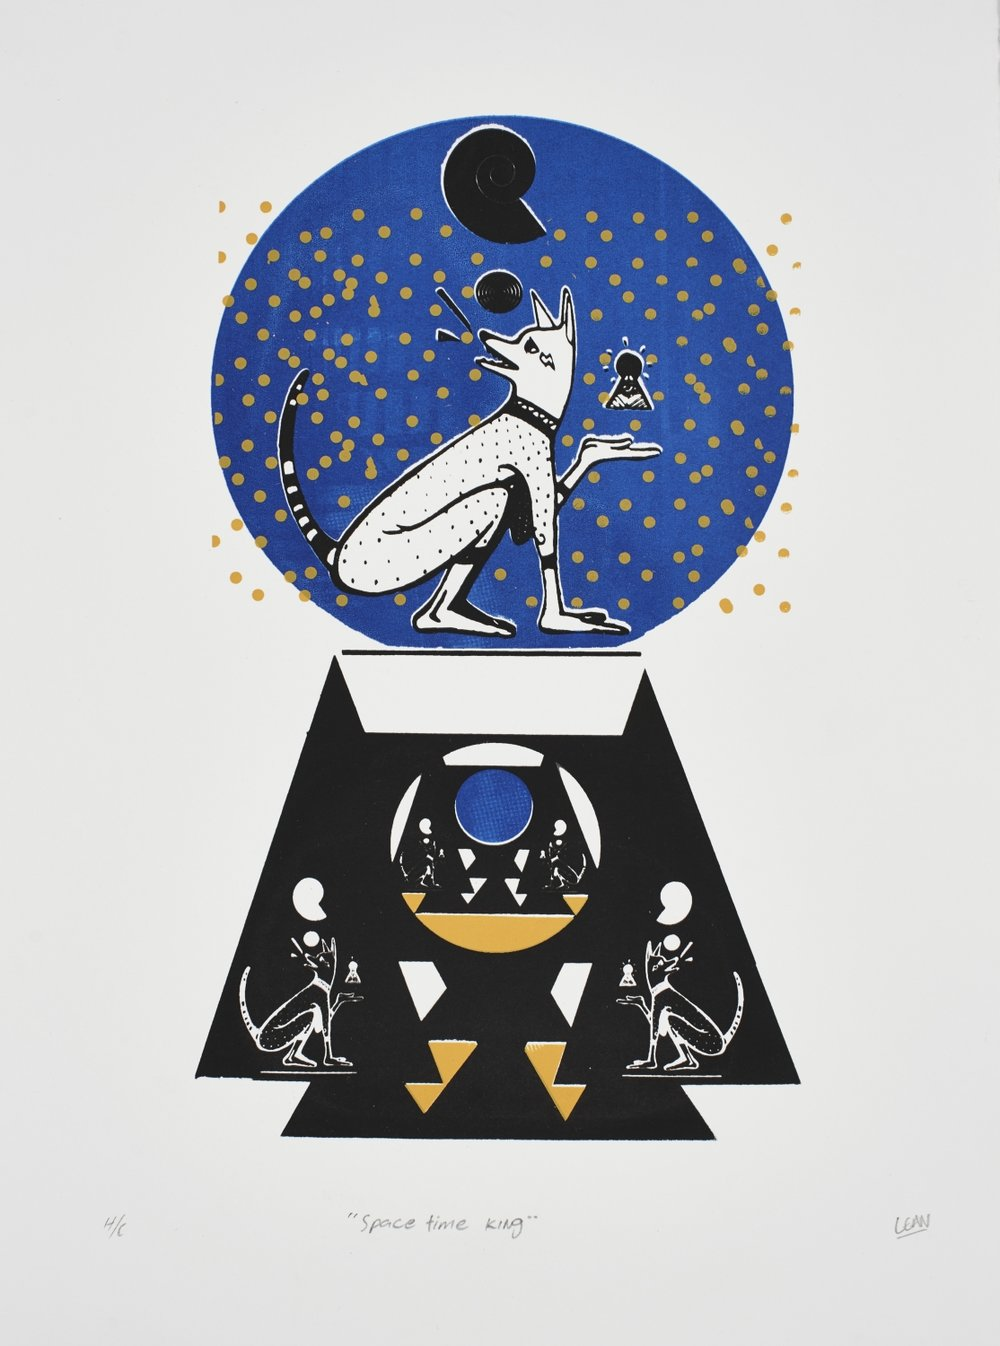 Space Time King   Mr Lean  Silkscreen on paper  Edition of 44  R 3 200.00 excl. vat